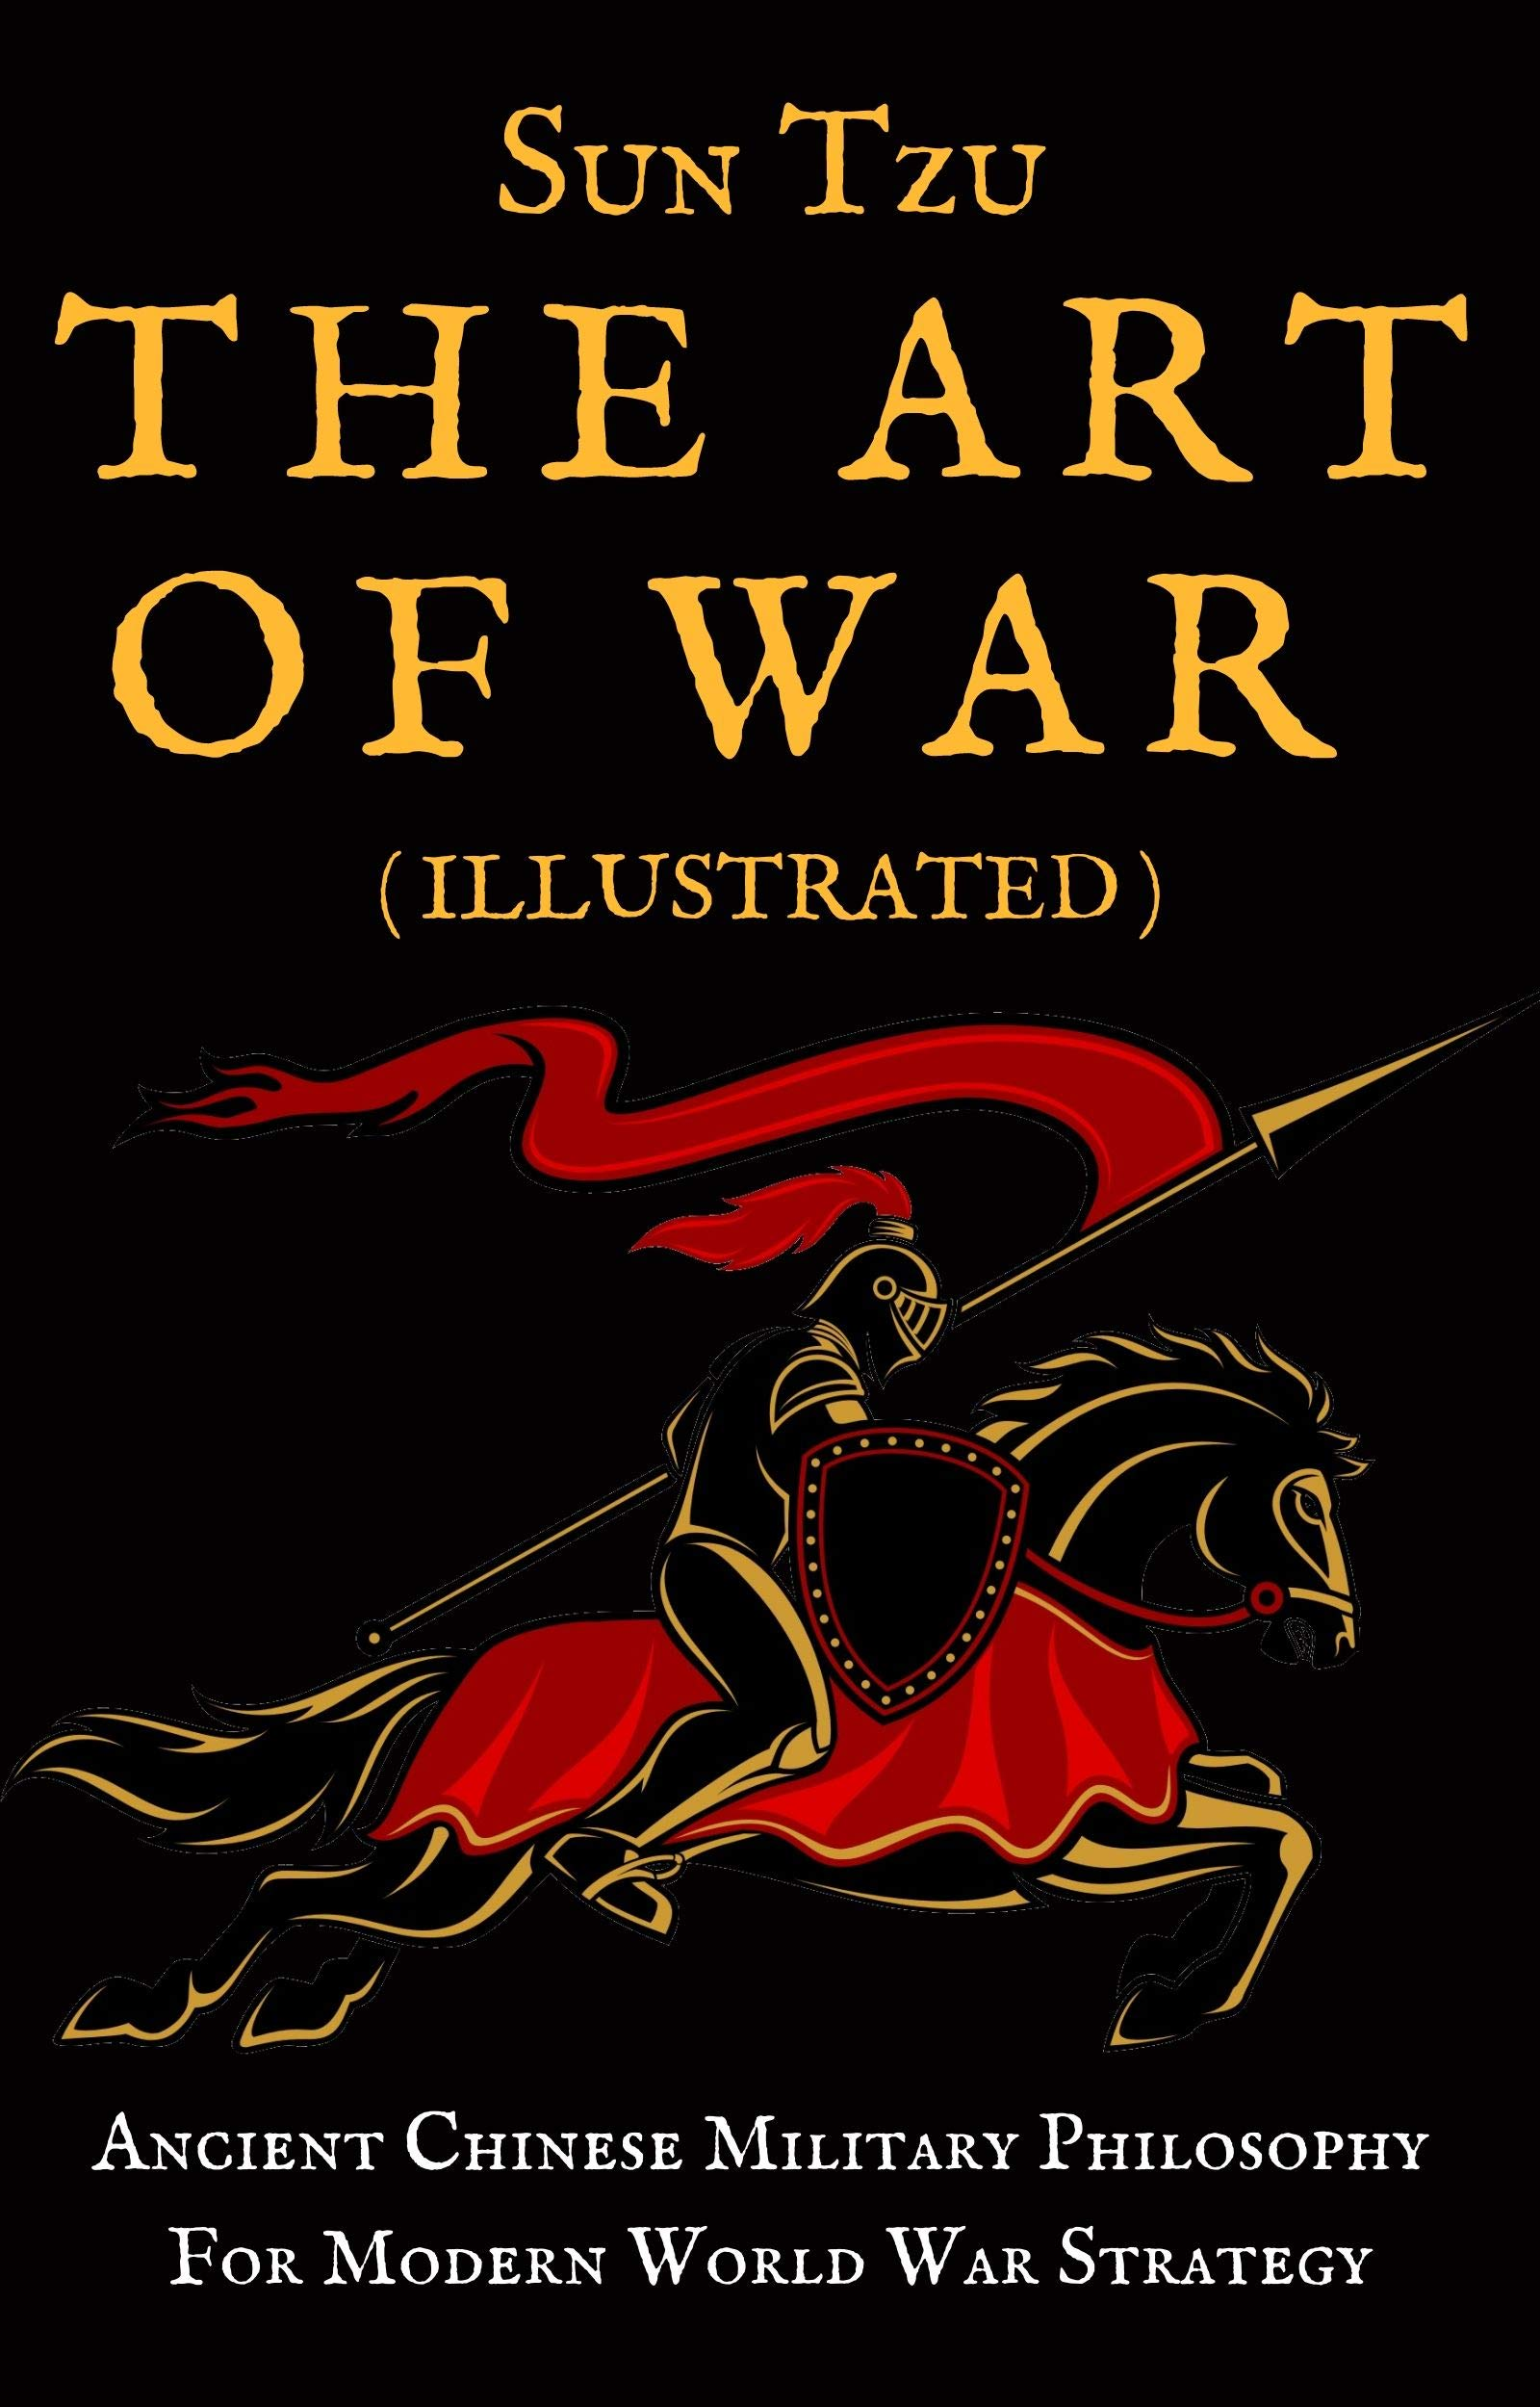 SUN TZU THE ART OF WAR ( ILLUSTRATED ): A Classic Book Of Military Strategy & Military Thought Based On Chinese Warfare. 2019 New Edition